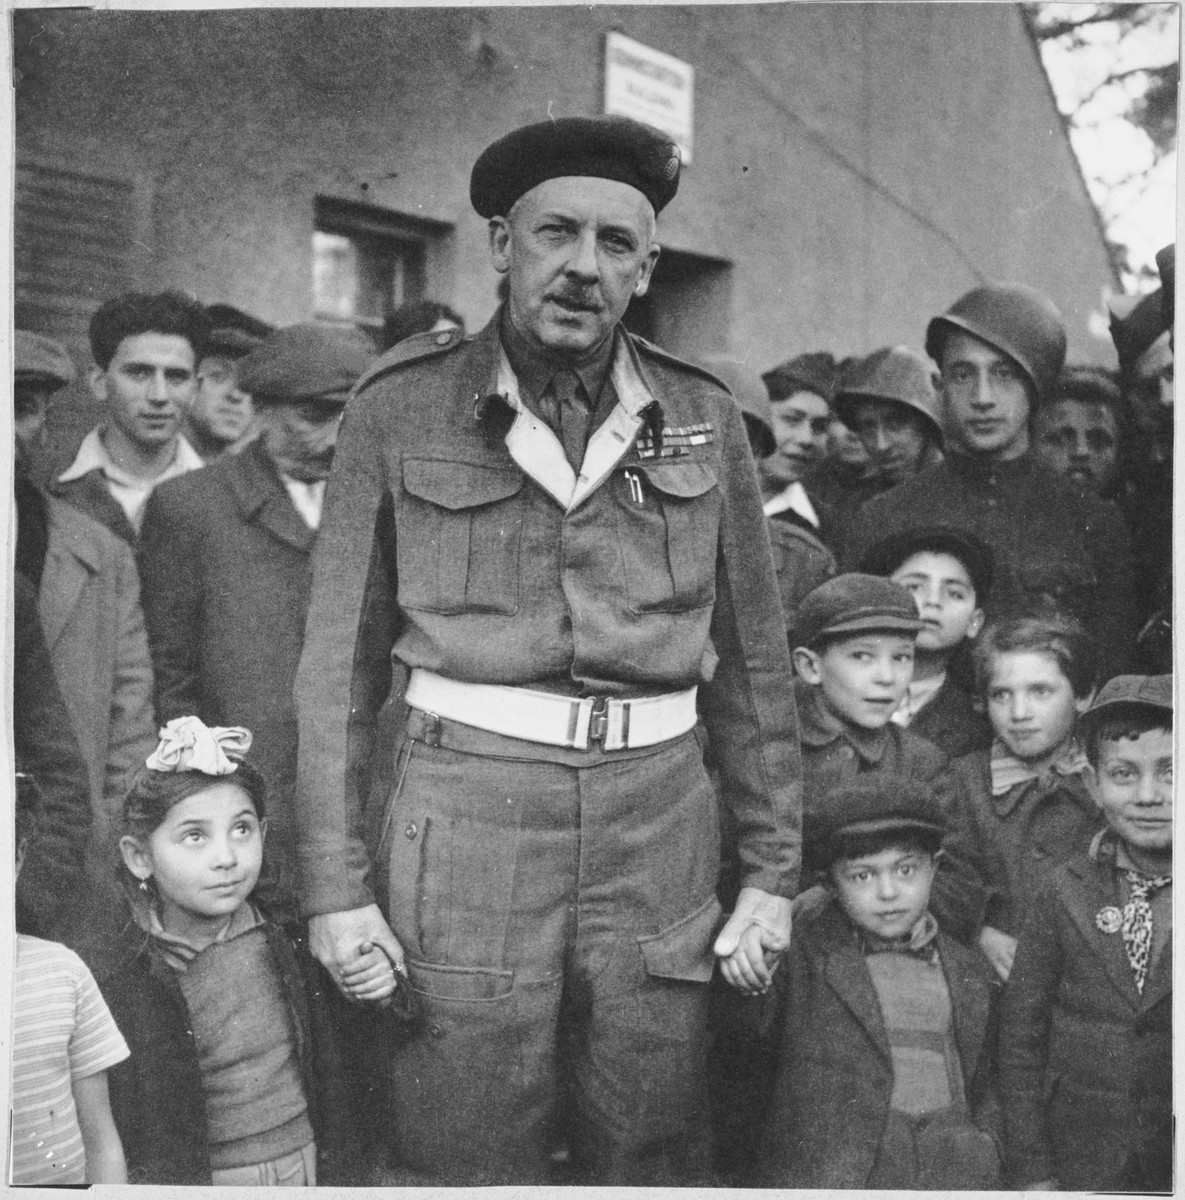 A British officer meets with children and other residents of the Foehrenwald displaced persons' camp.